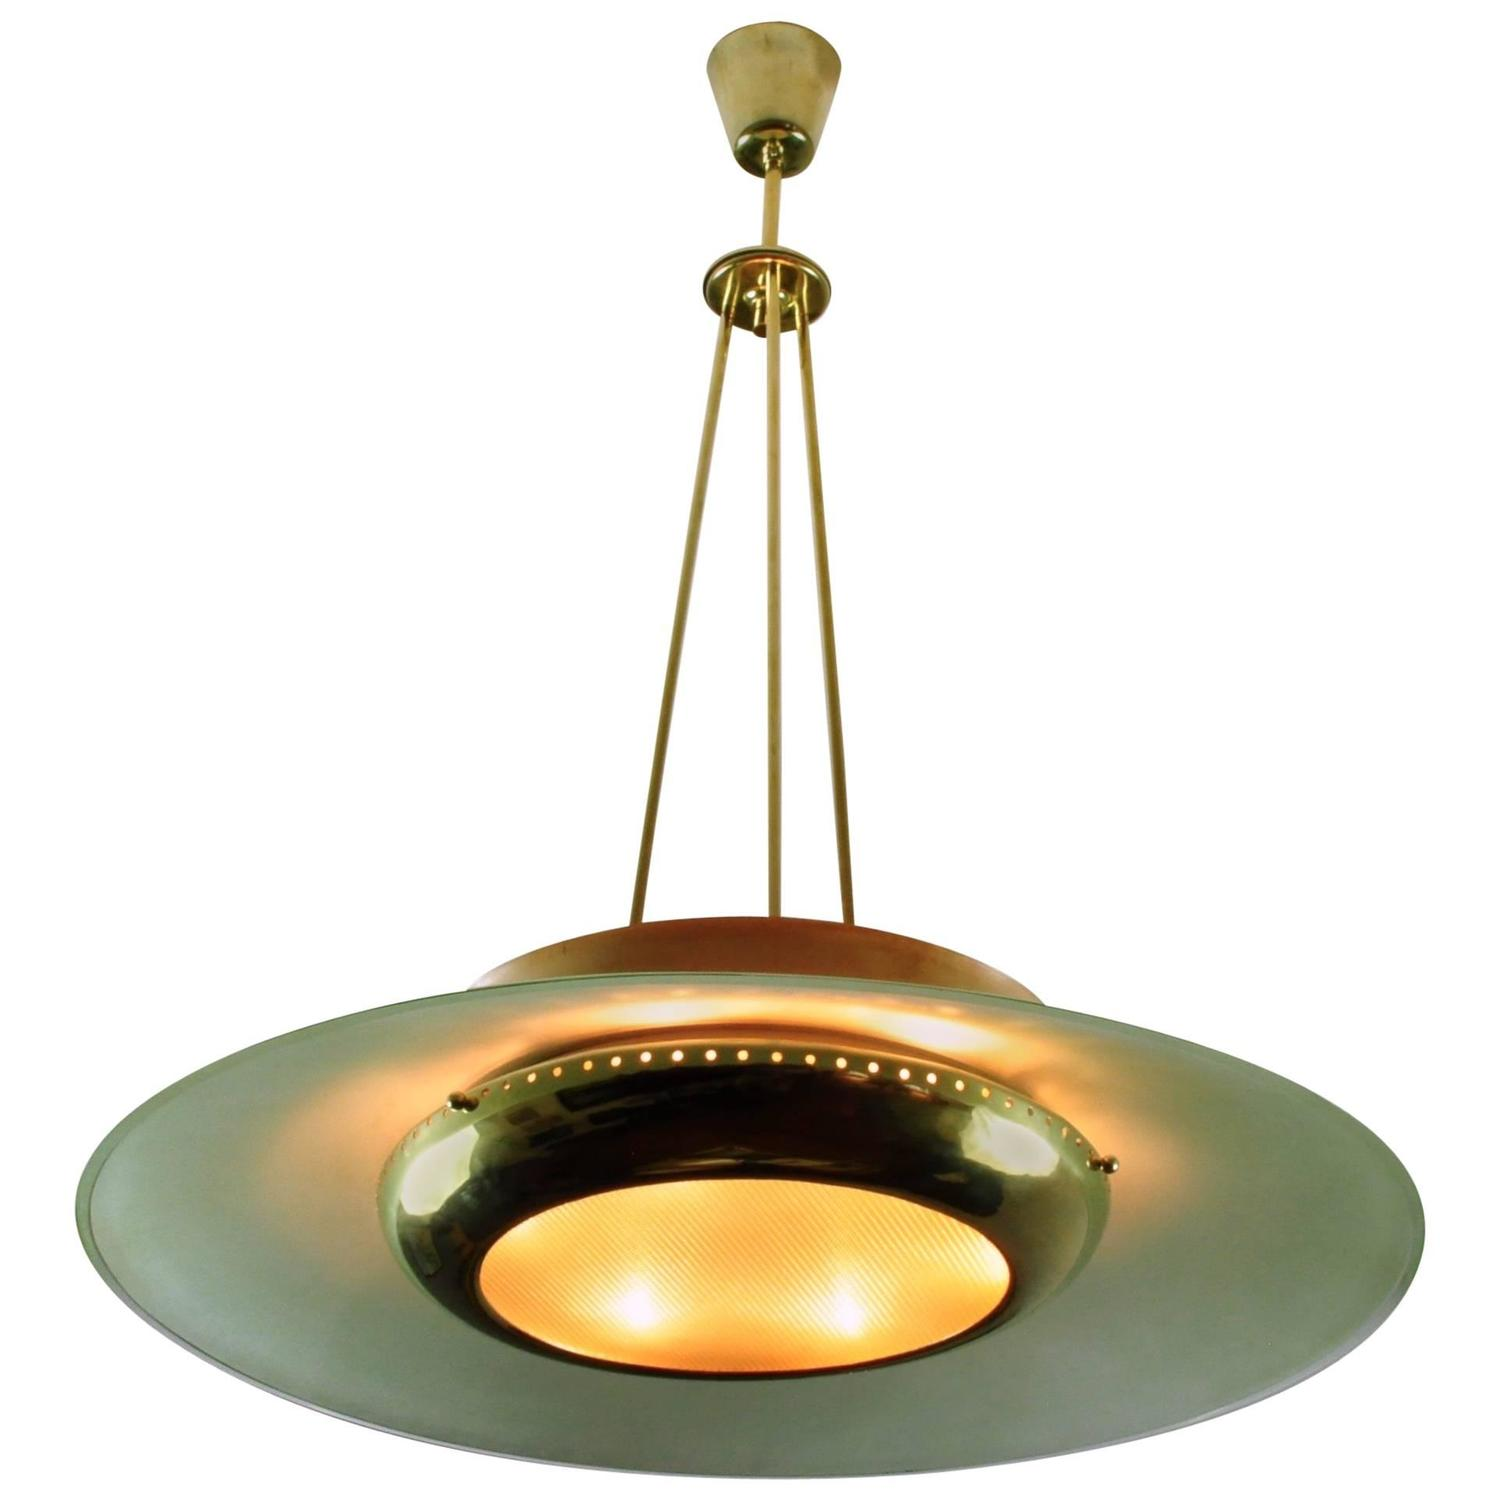 1950s Prism Edge Glass and Brass Ceiling Lamp Image